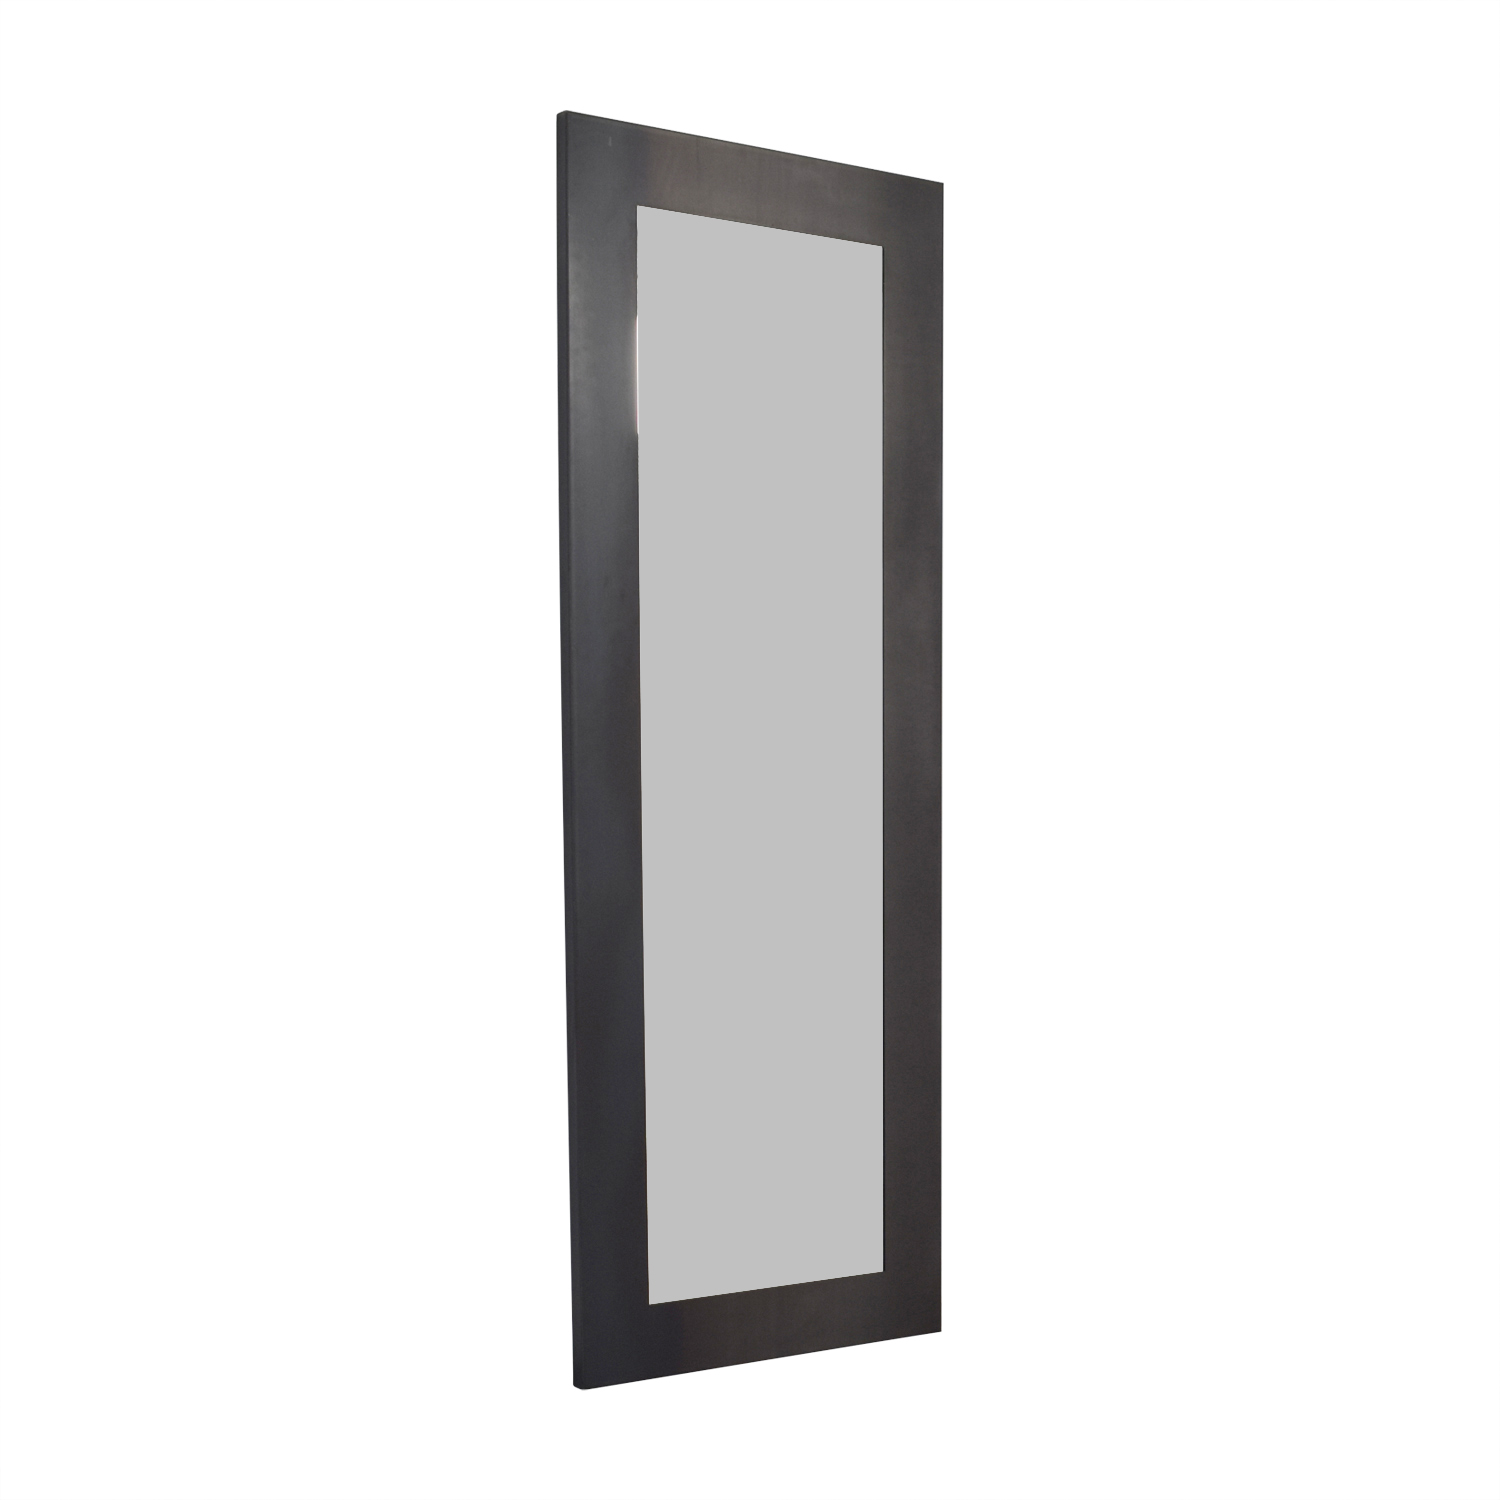 buy Room & Board Room & Board Natural Steel Industry Leaning Mirror online